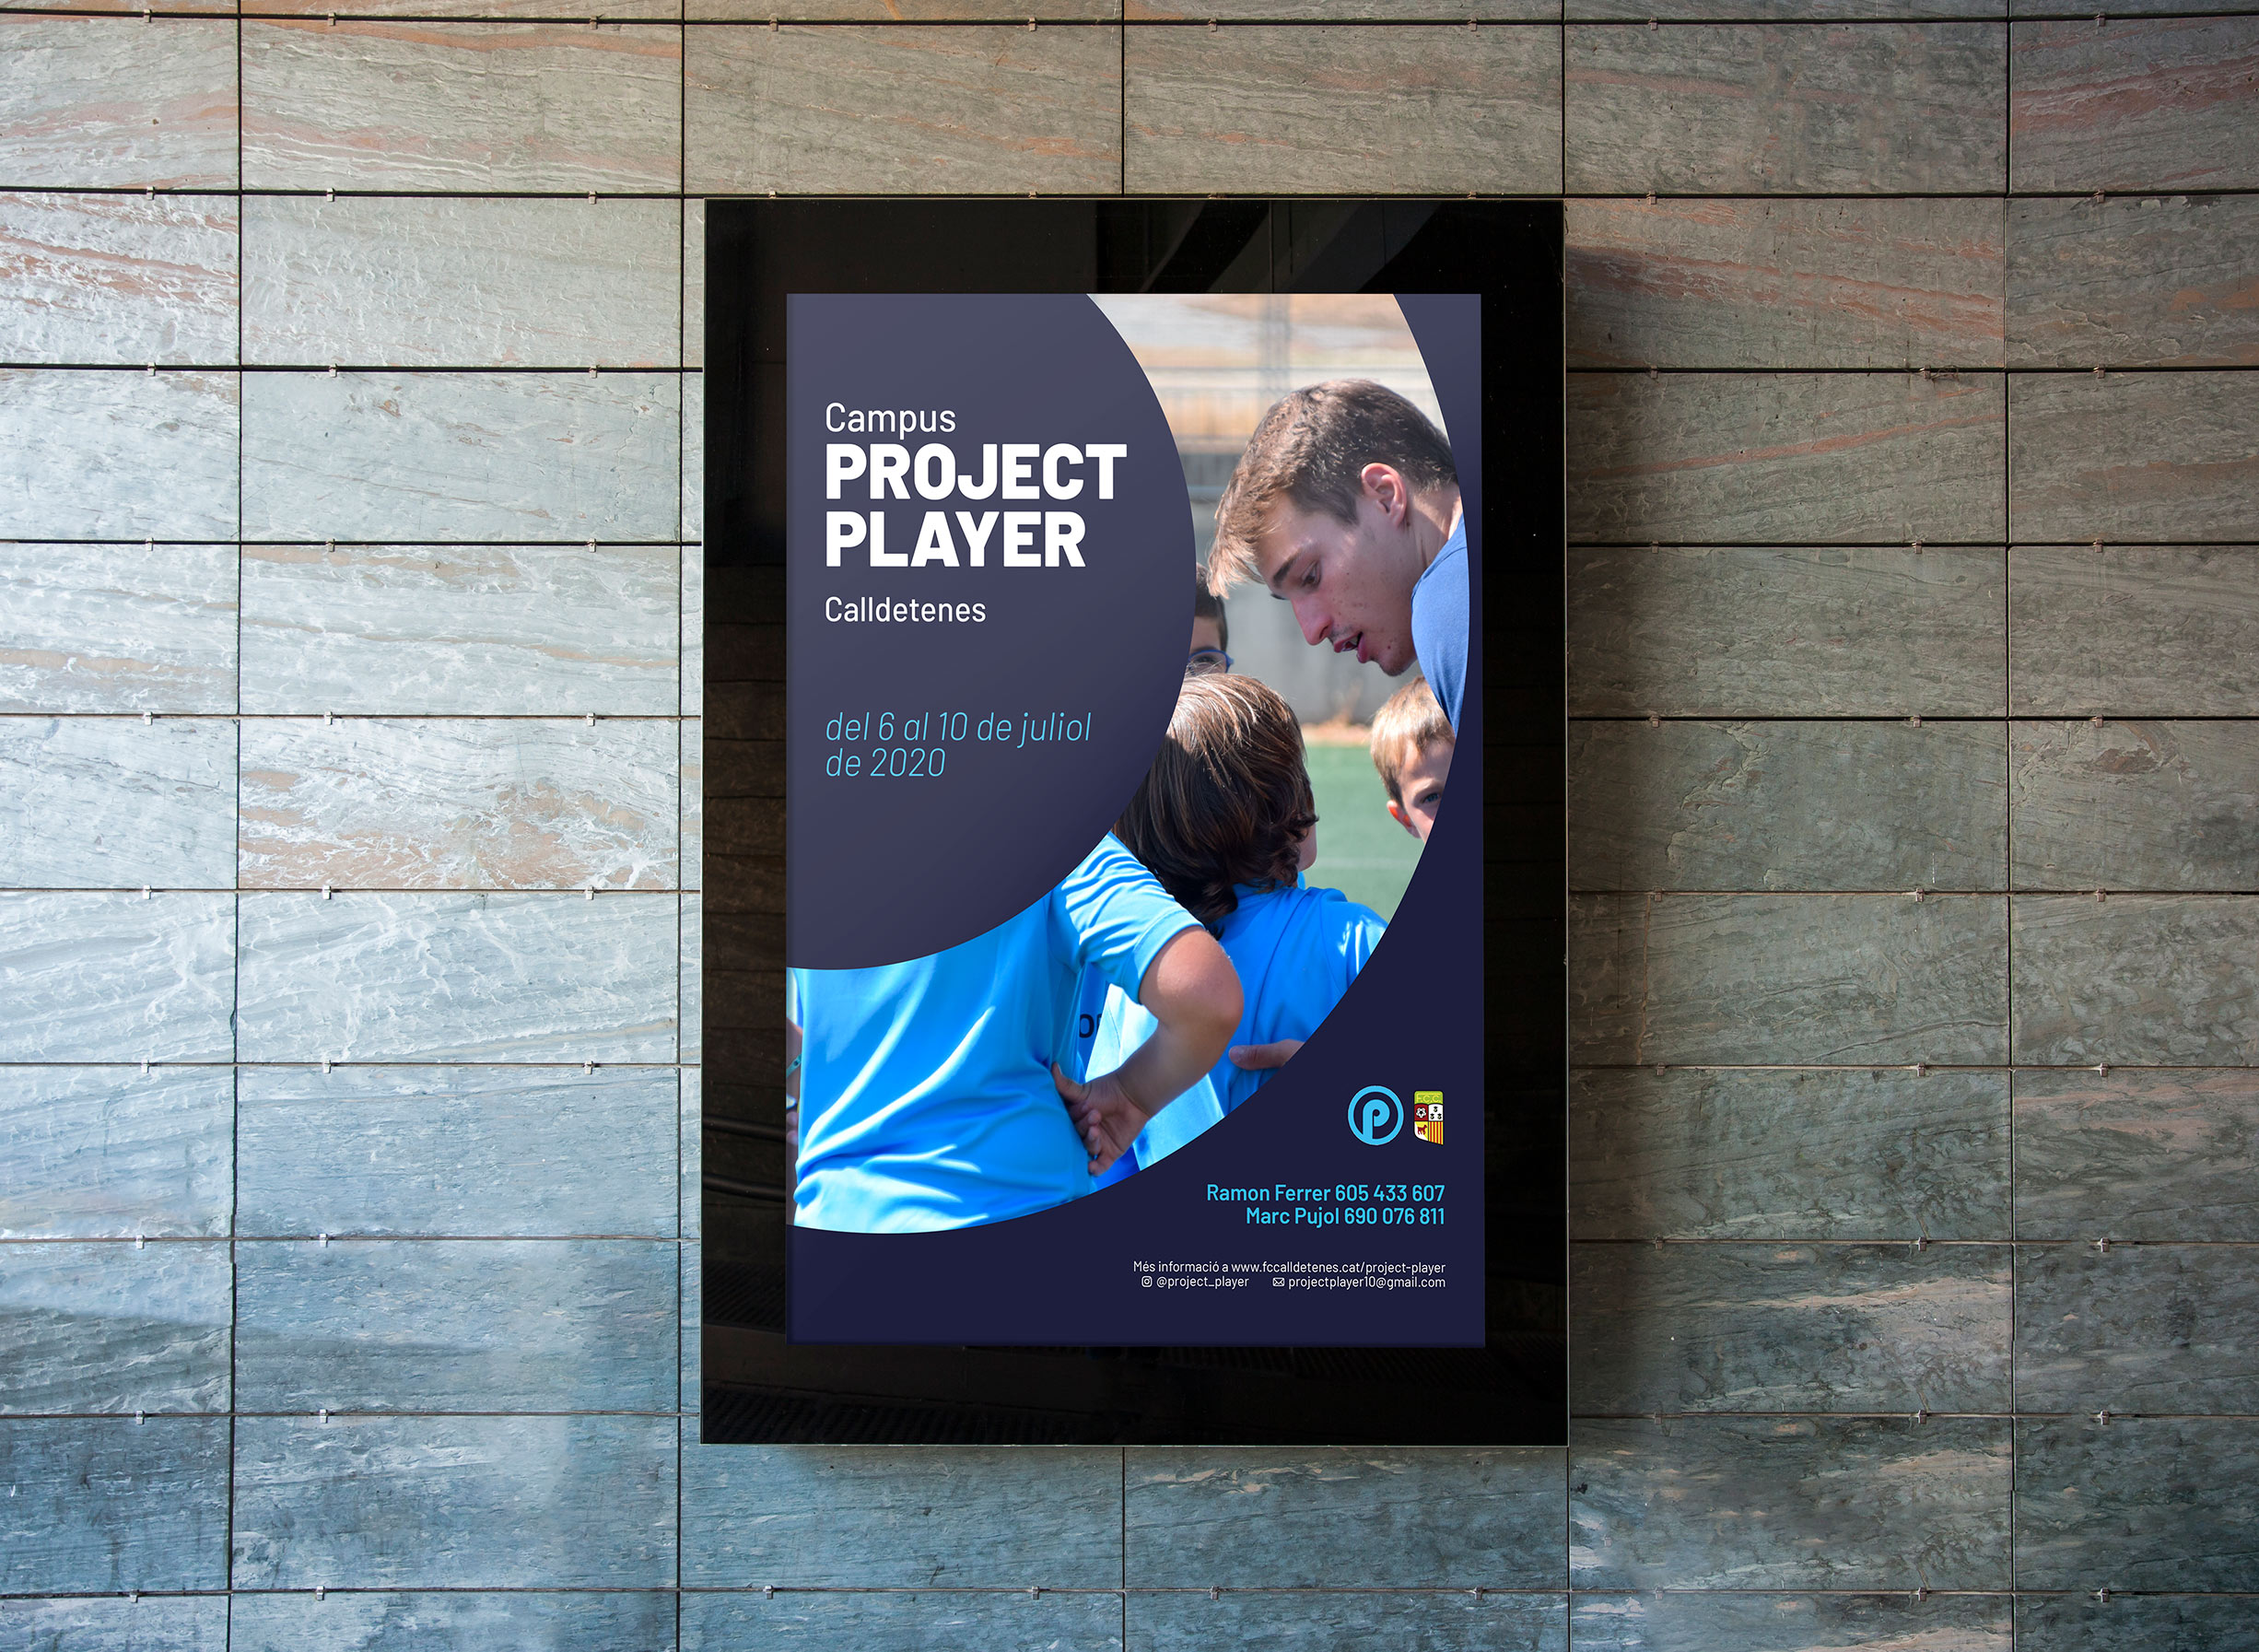 Campus Project Player poster